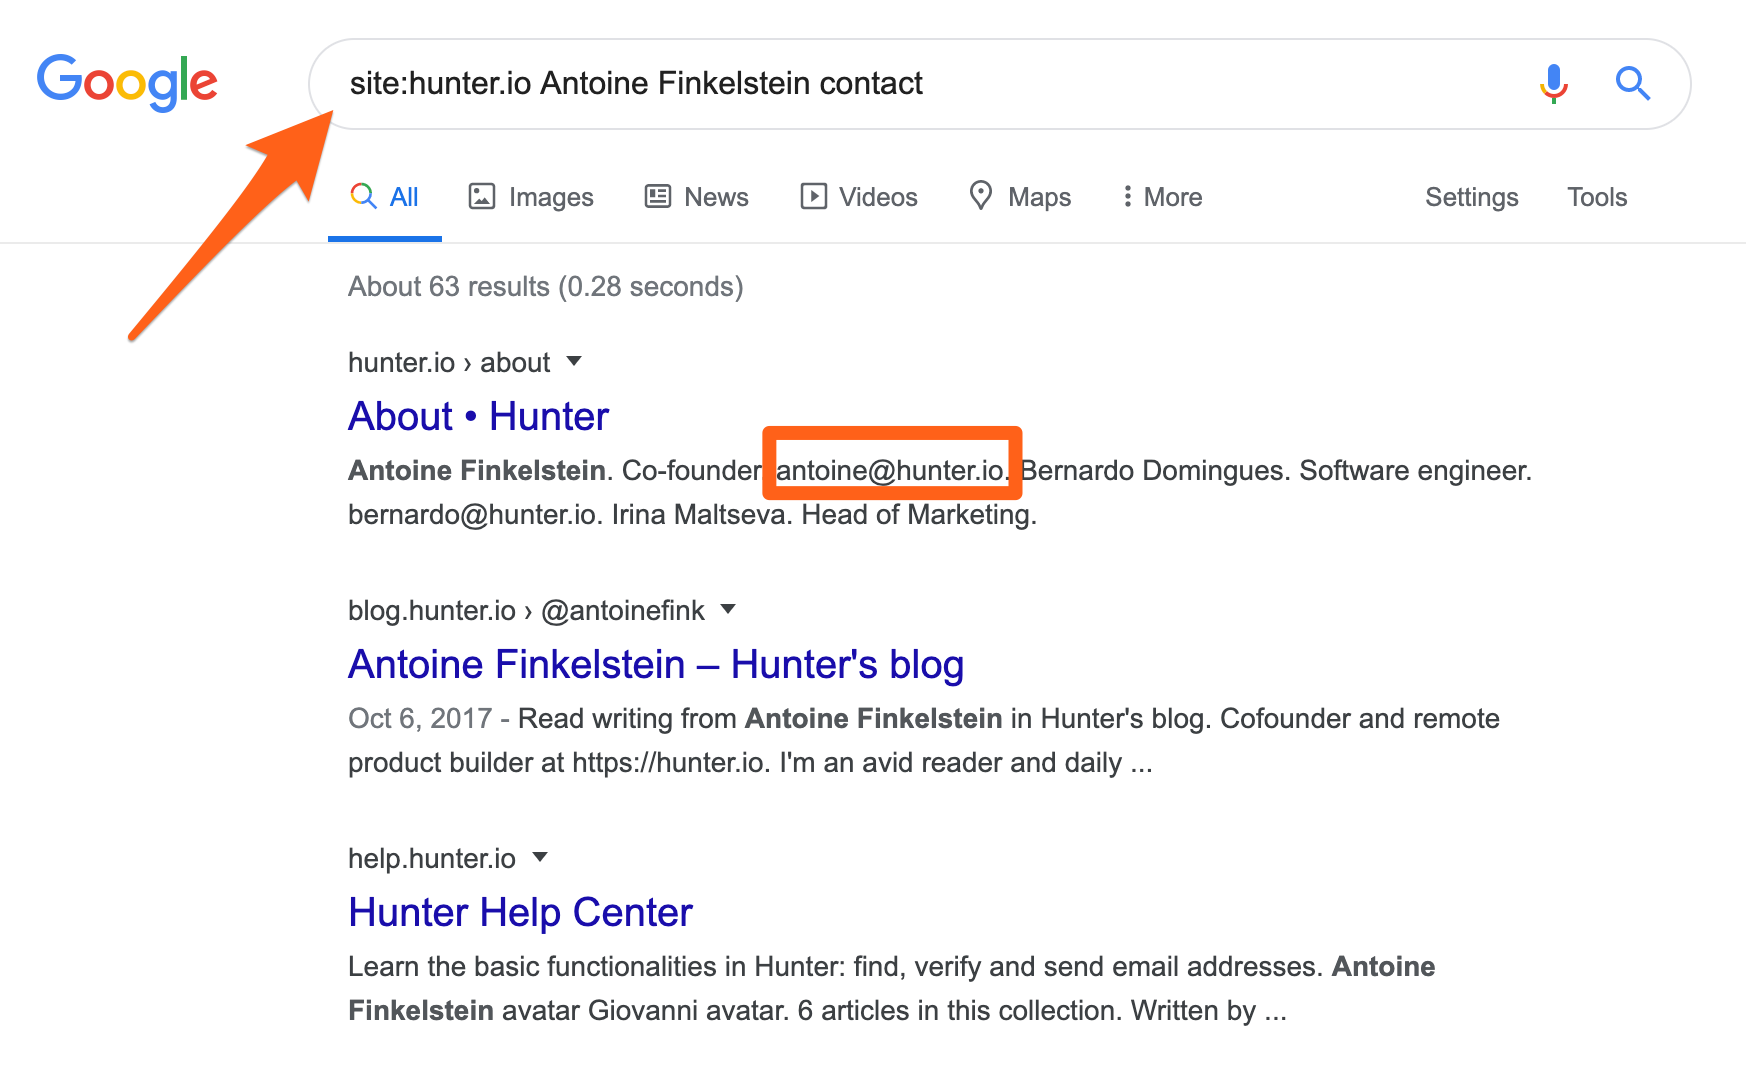 Example of how to find Hunter's co-founder email address using Google Search operators